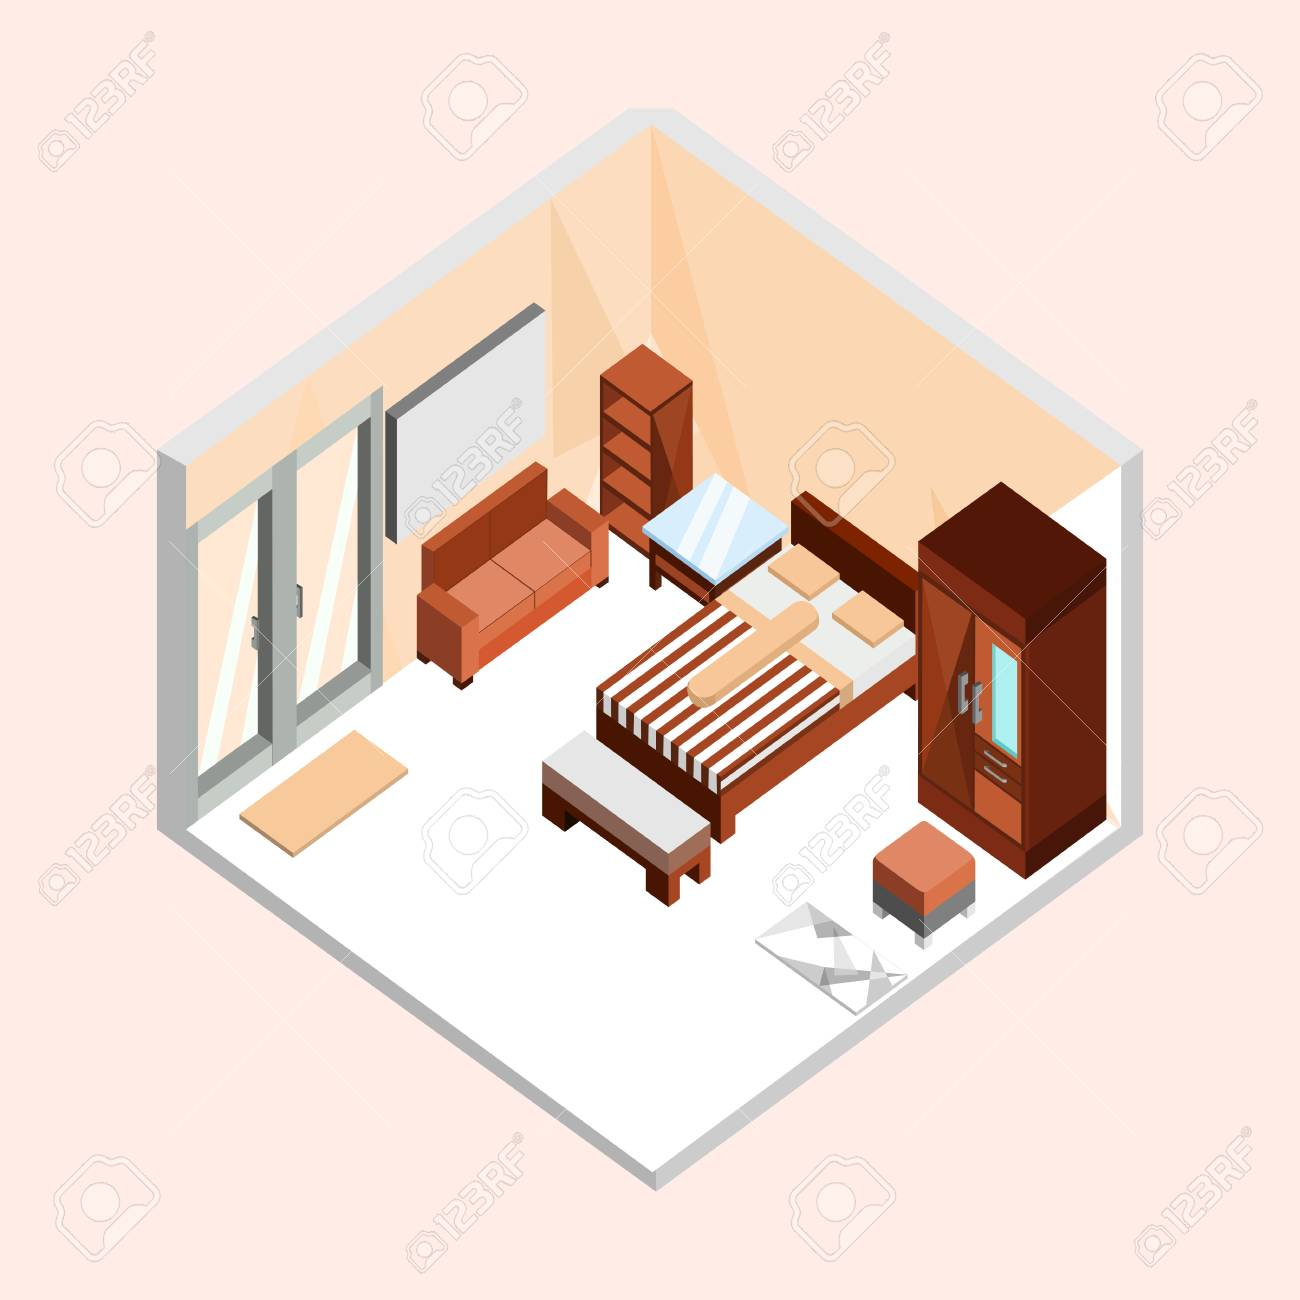 Natural Brown Isometric Home Interior Vector Illustration Graphic Design  Stock Vector   97793819